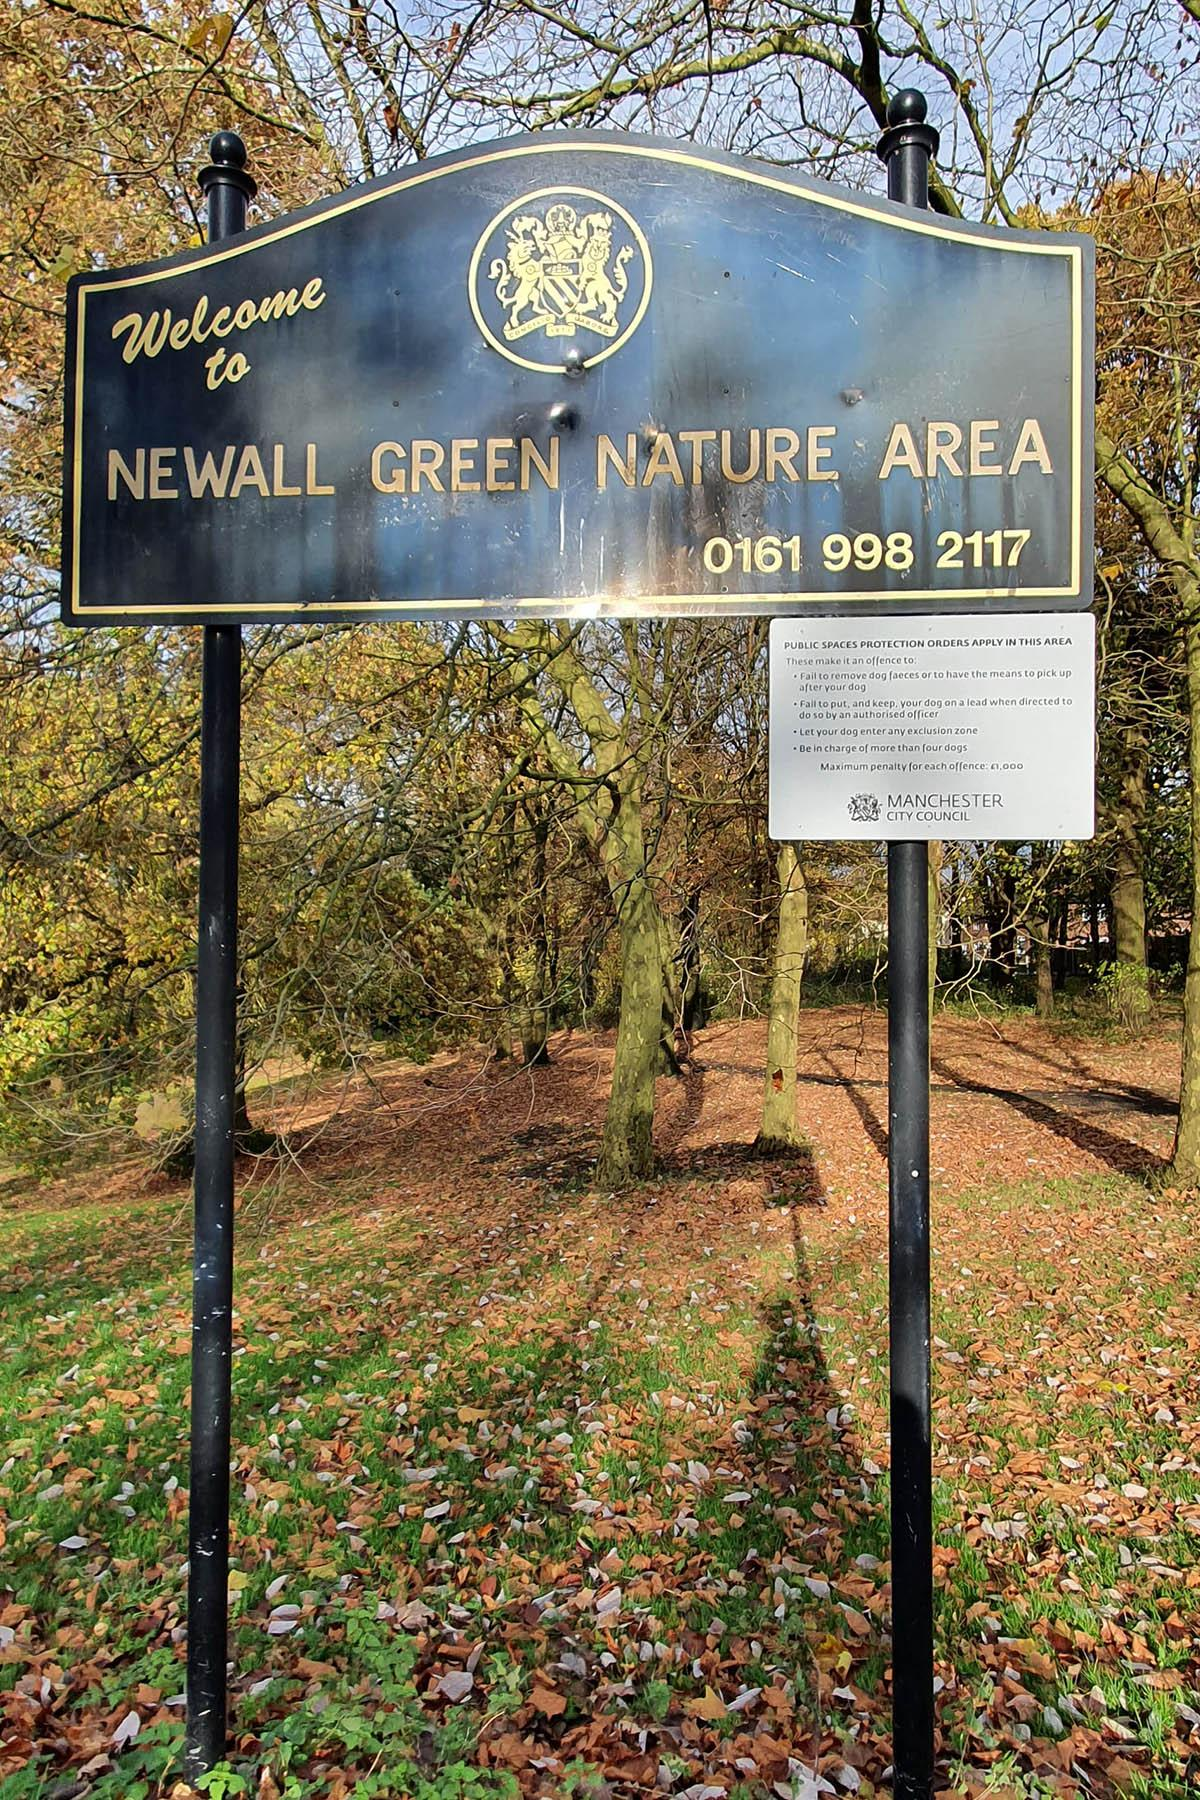 Milky Button Park and Newall Green Nature Area, Millbrook, Newall Green, M23 2QB